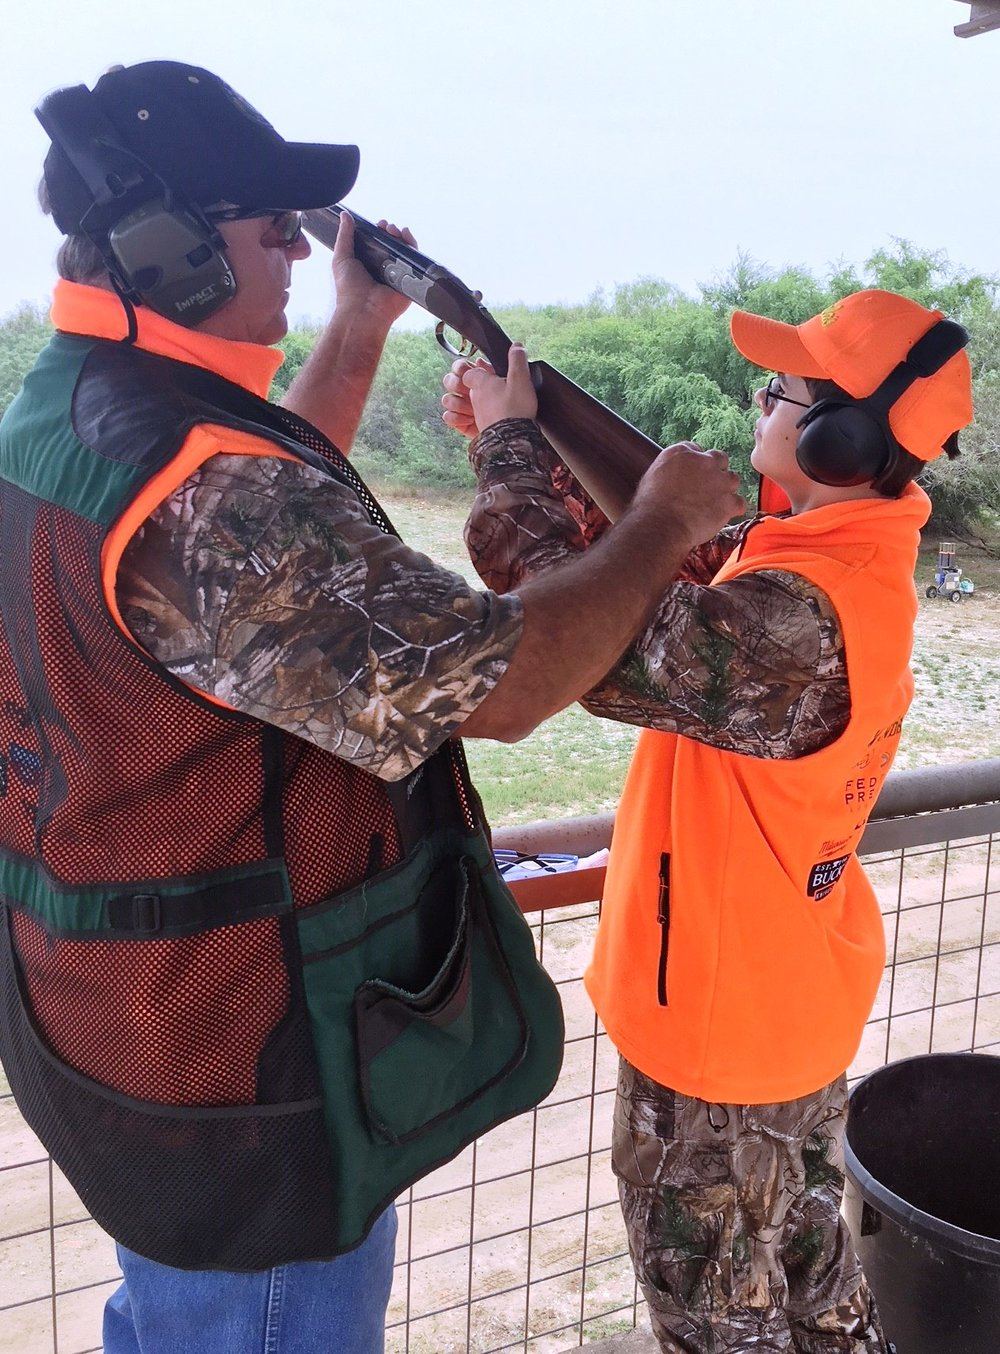 - The Texas Parks and Wildlife Department's South Texas Hunter Education Specialist, Brock Minton, teaches shotgun skills on the Hixon's sporting clays course between the morning and afternoon hunts as part of the Heritage Hunt.